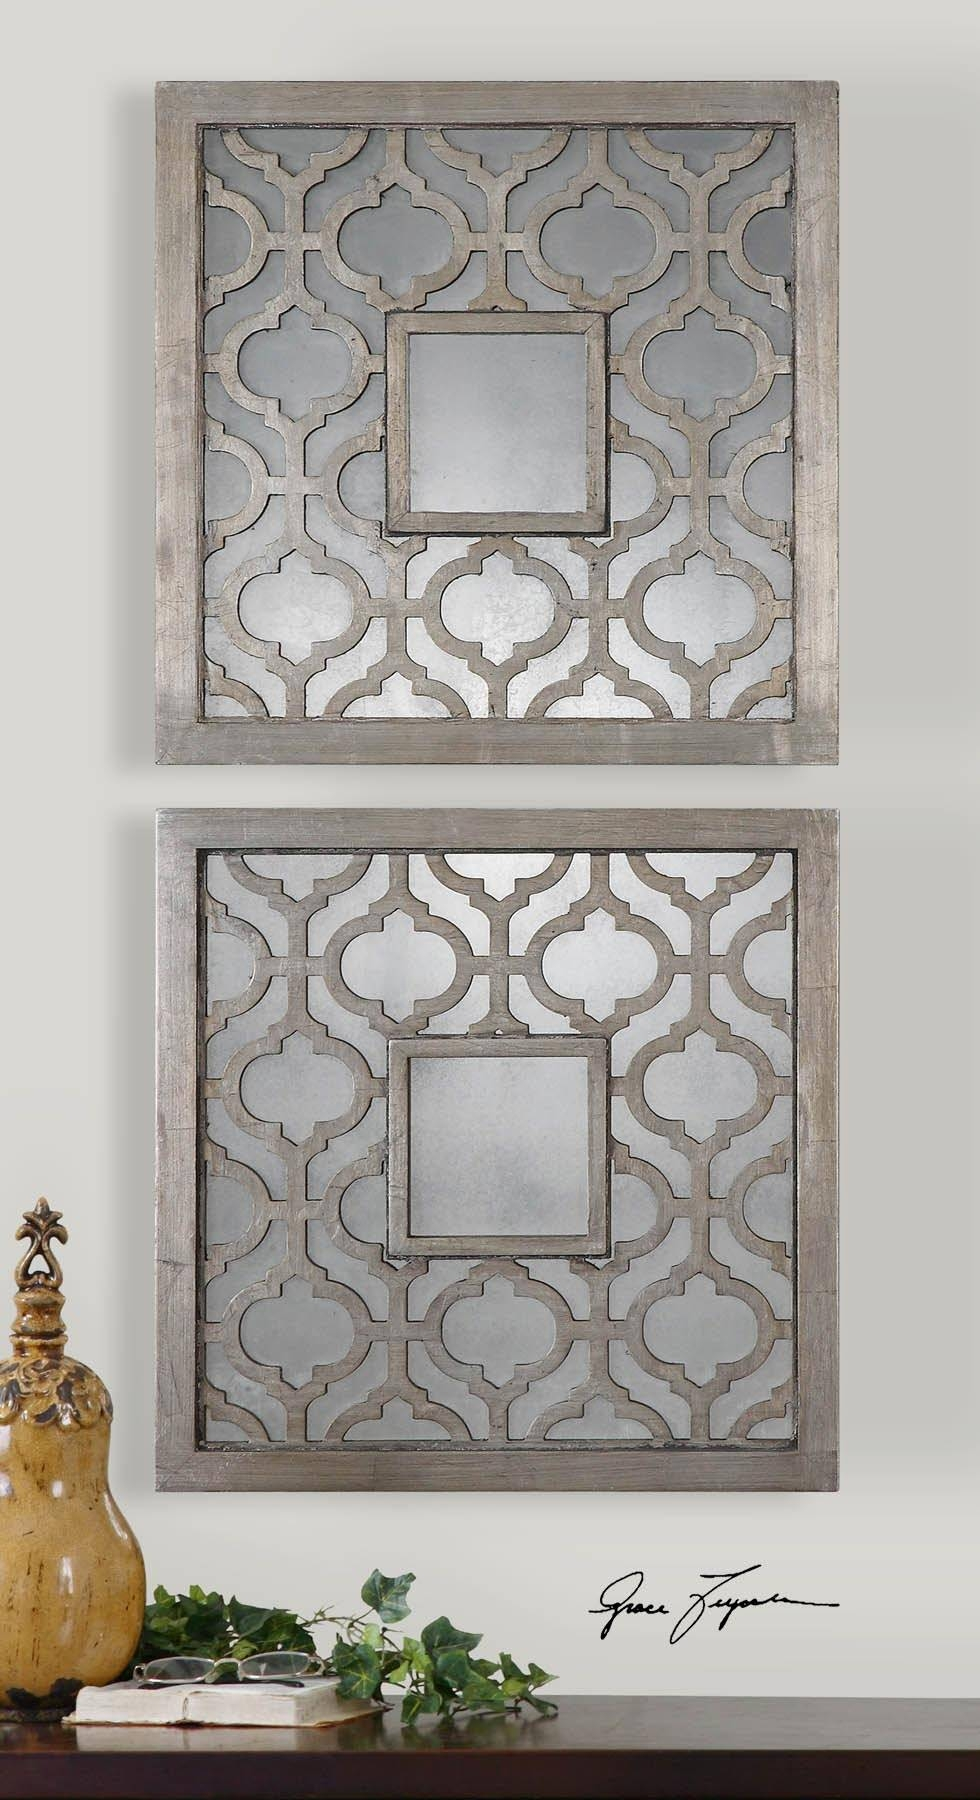 Wall Art Designs: Dimensional Wall Art Moroccan Trellis Antiqued Pertaining To Most Recently Released Moroccan Metal Wall Art (View 1 of 15)